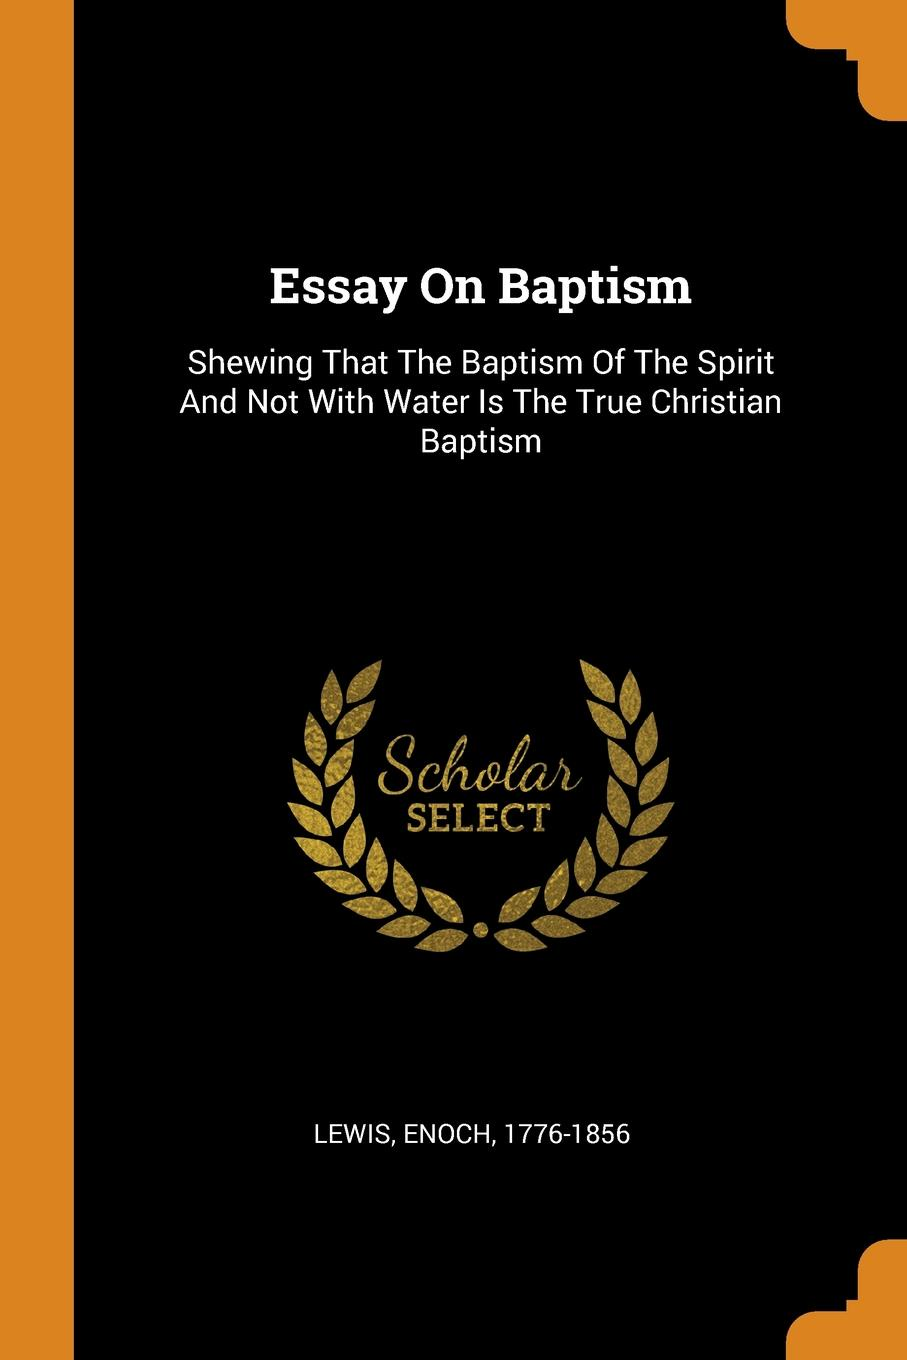 Essay On Baptism. Shewing That The Baptism Of The Spirit And Not With Water Is The True Christian Baptism